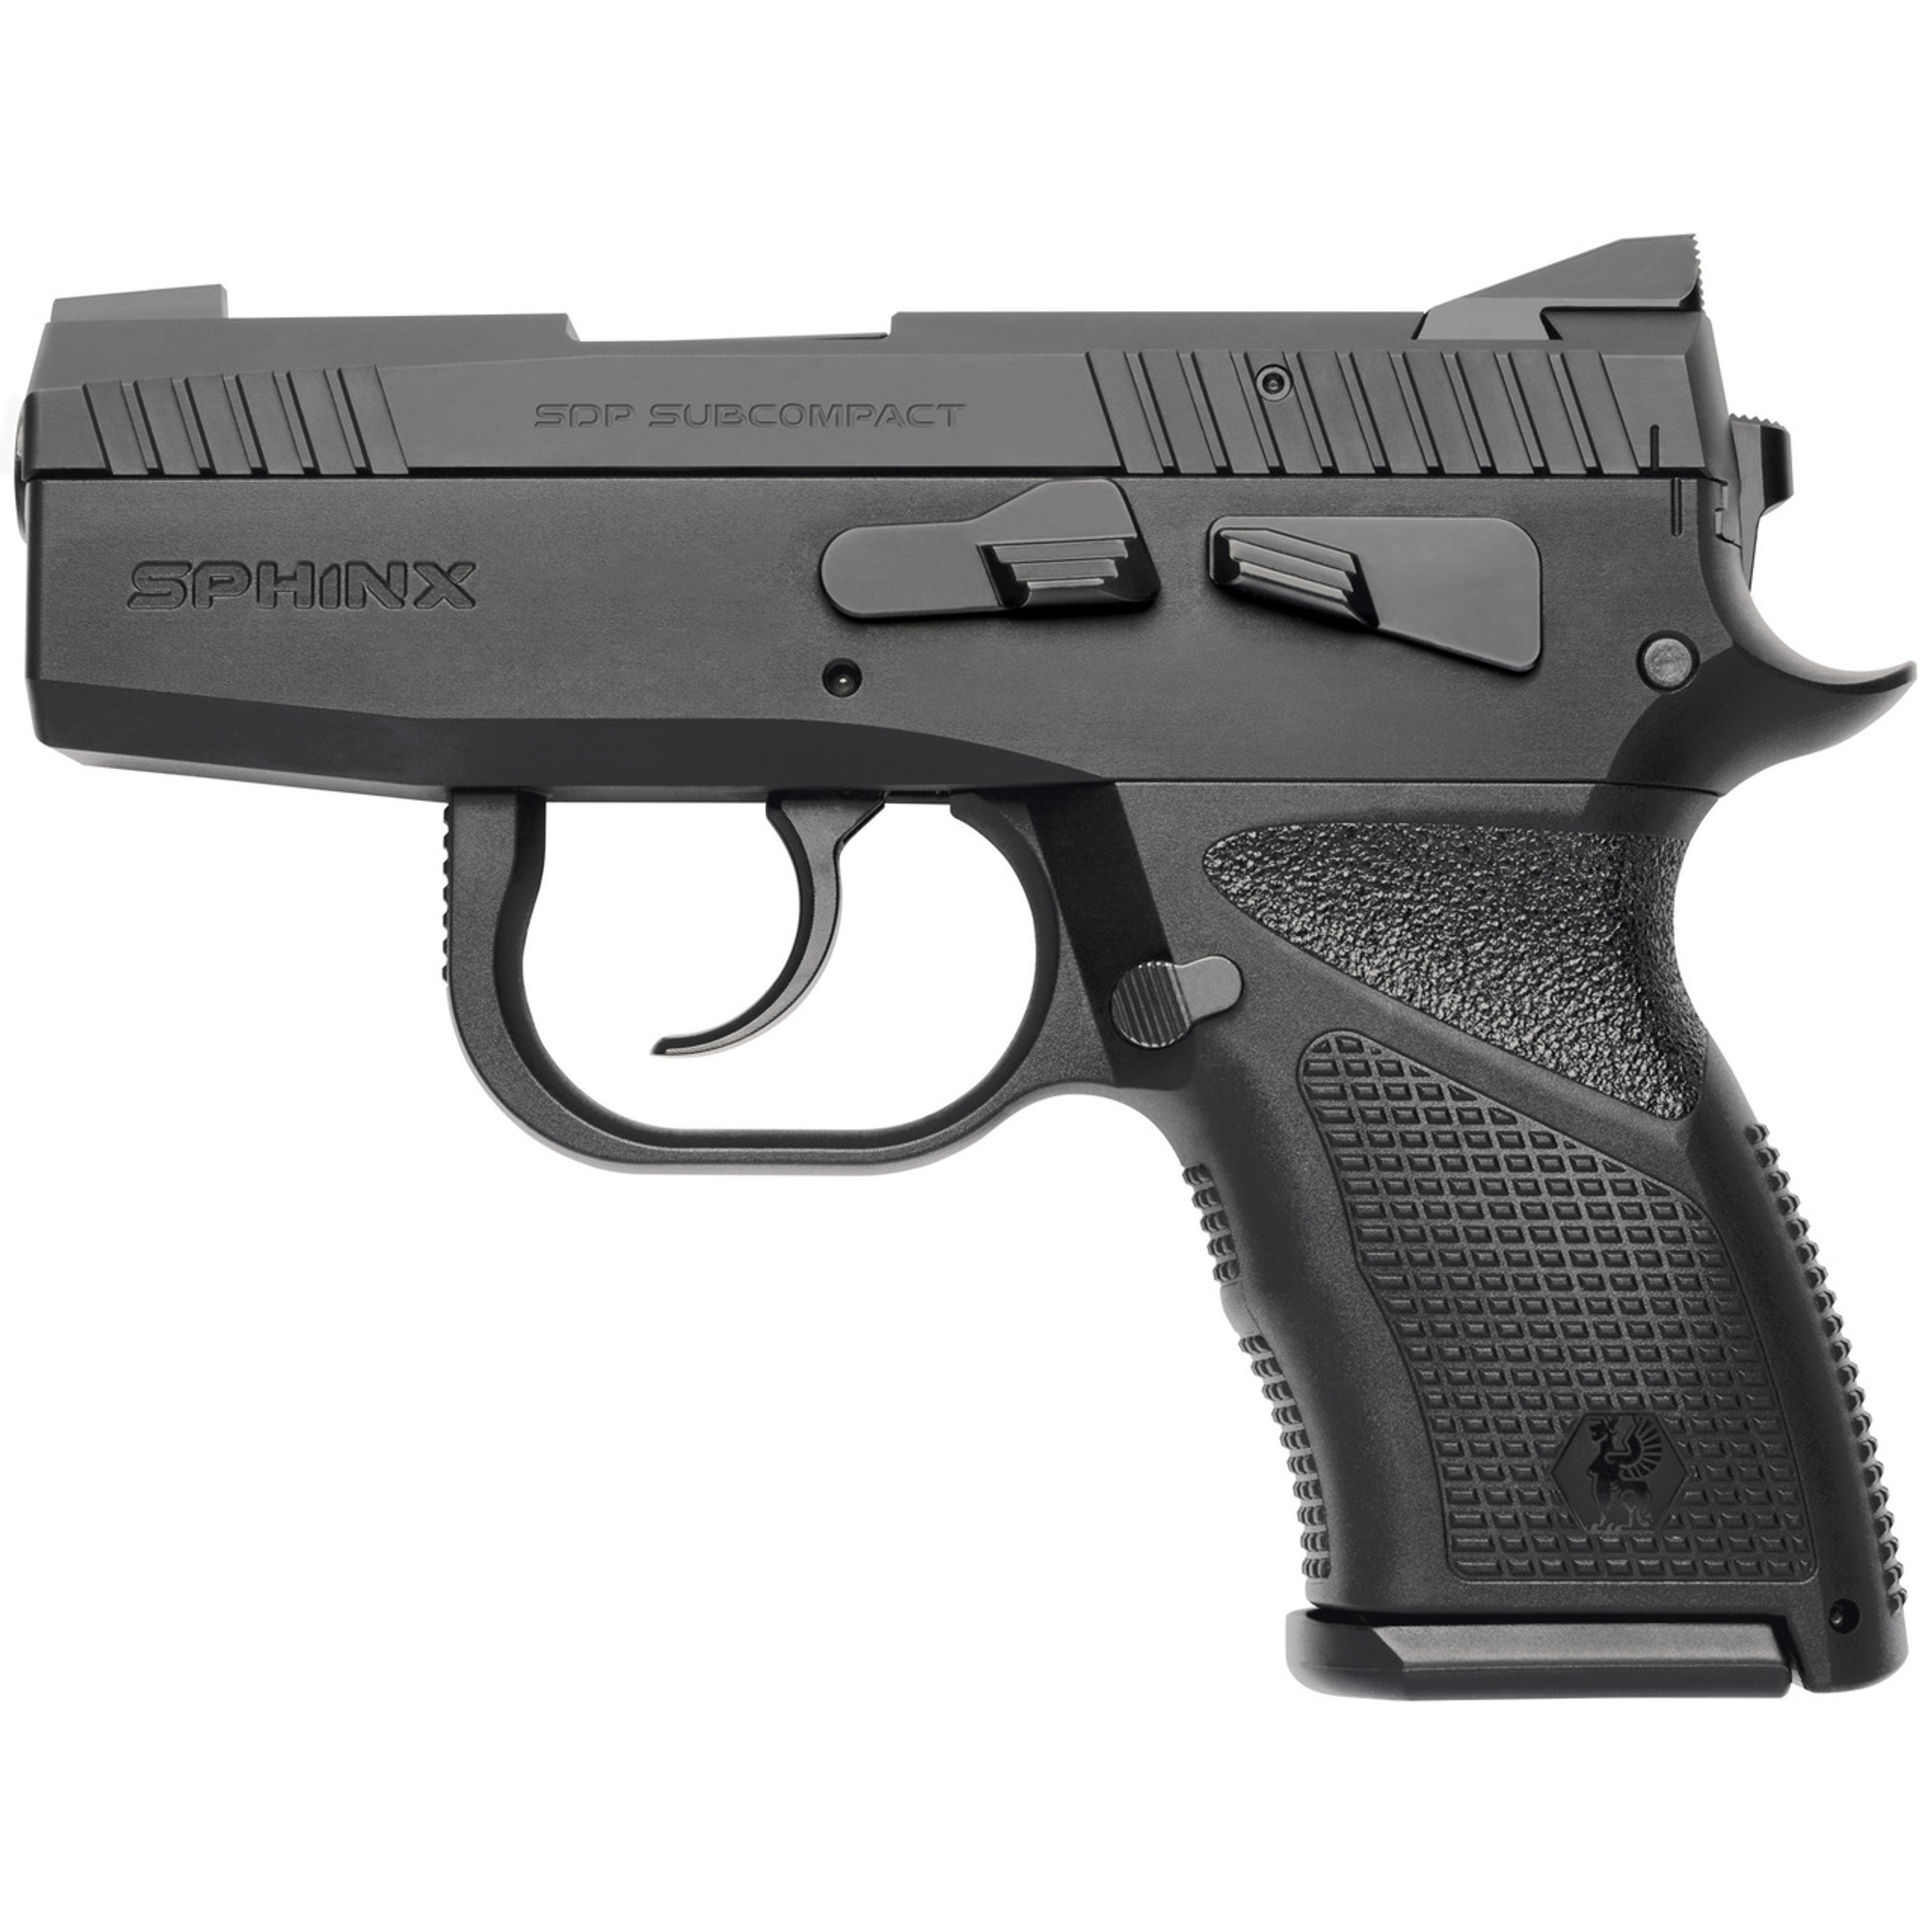 Kriss Sphinx Sdp Subcompact 9mm Blk